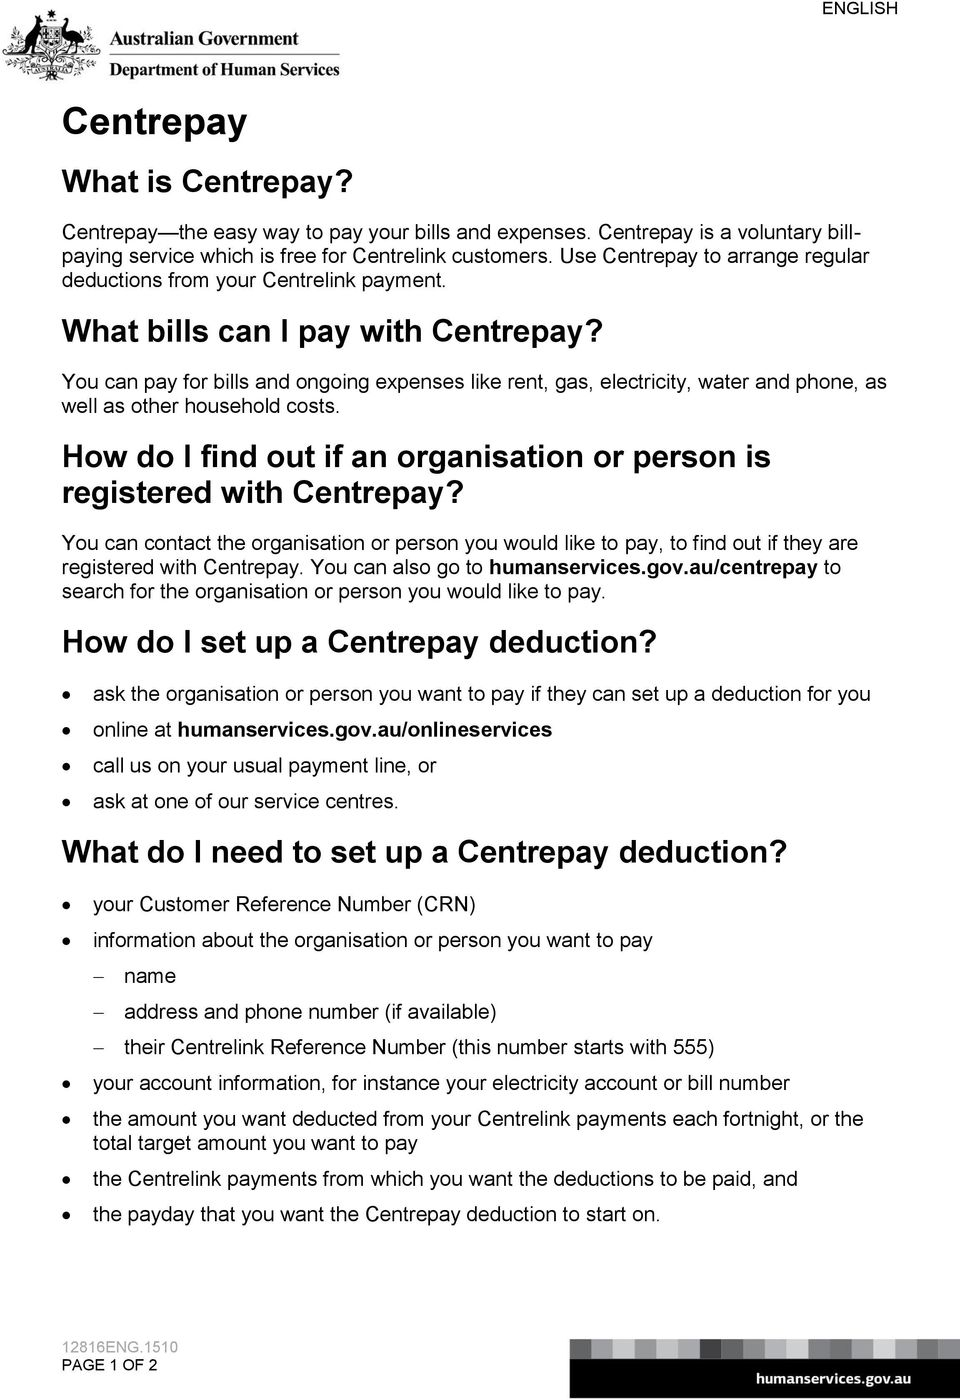 You can pay for bills and ongoing expenses like rent, gas, electricity, water and phone, as well as other household costs. How do I find out if an organisation or person is registered with Centrepay?